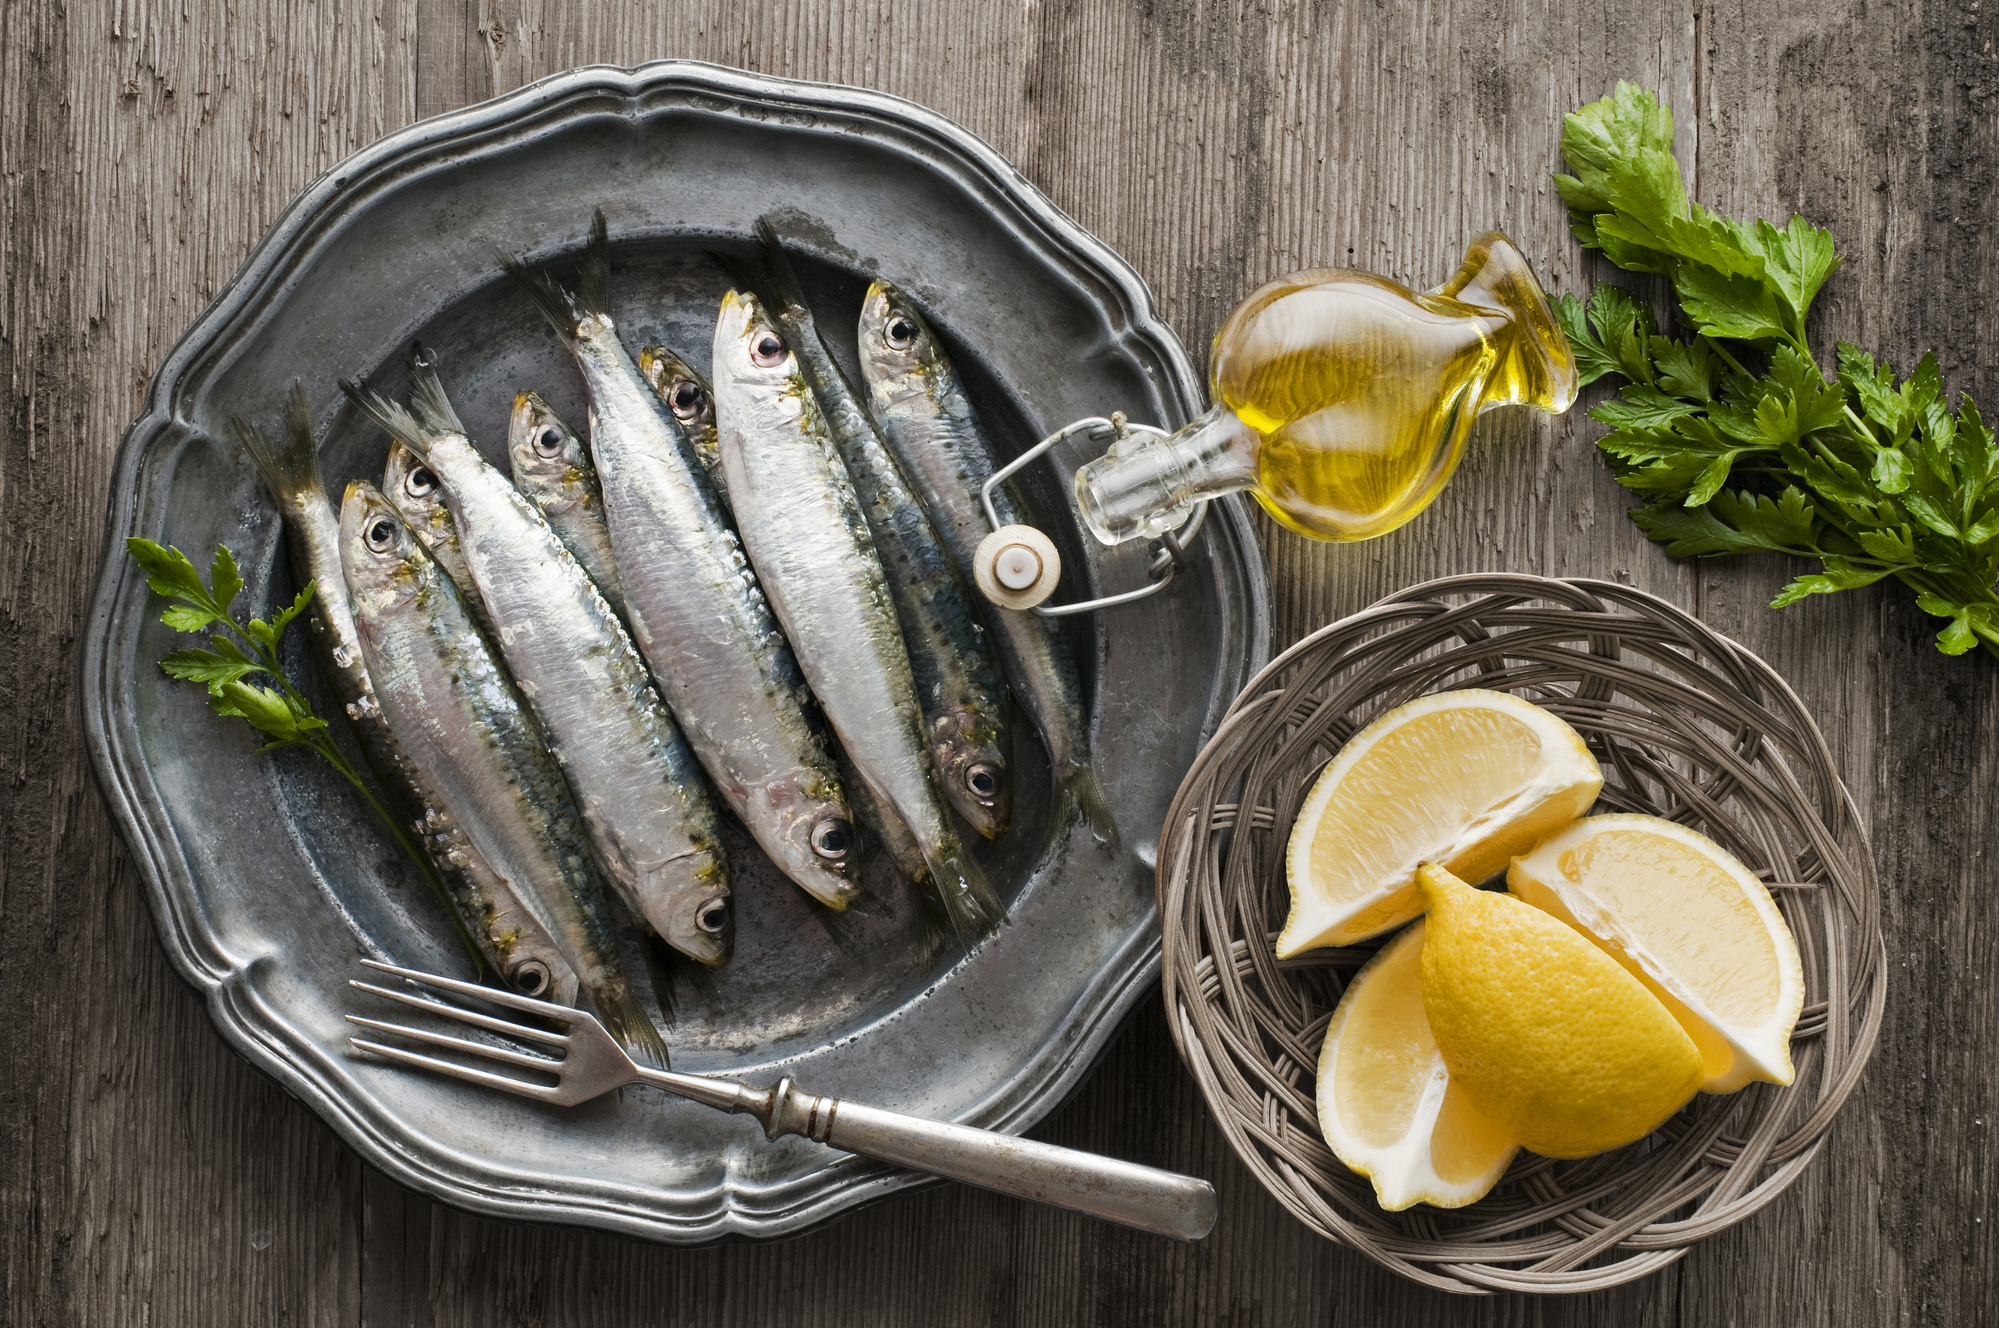 Sardines - Can Nutrition Help With Concussion Treatment?